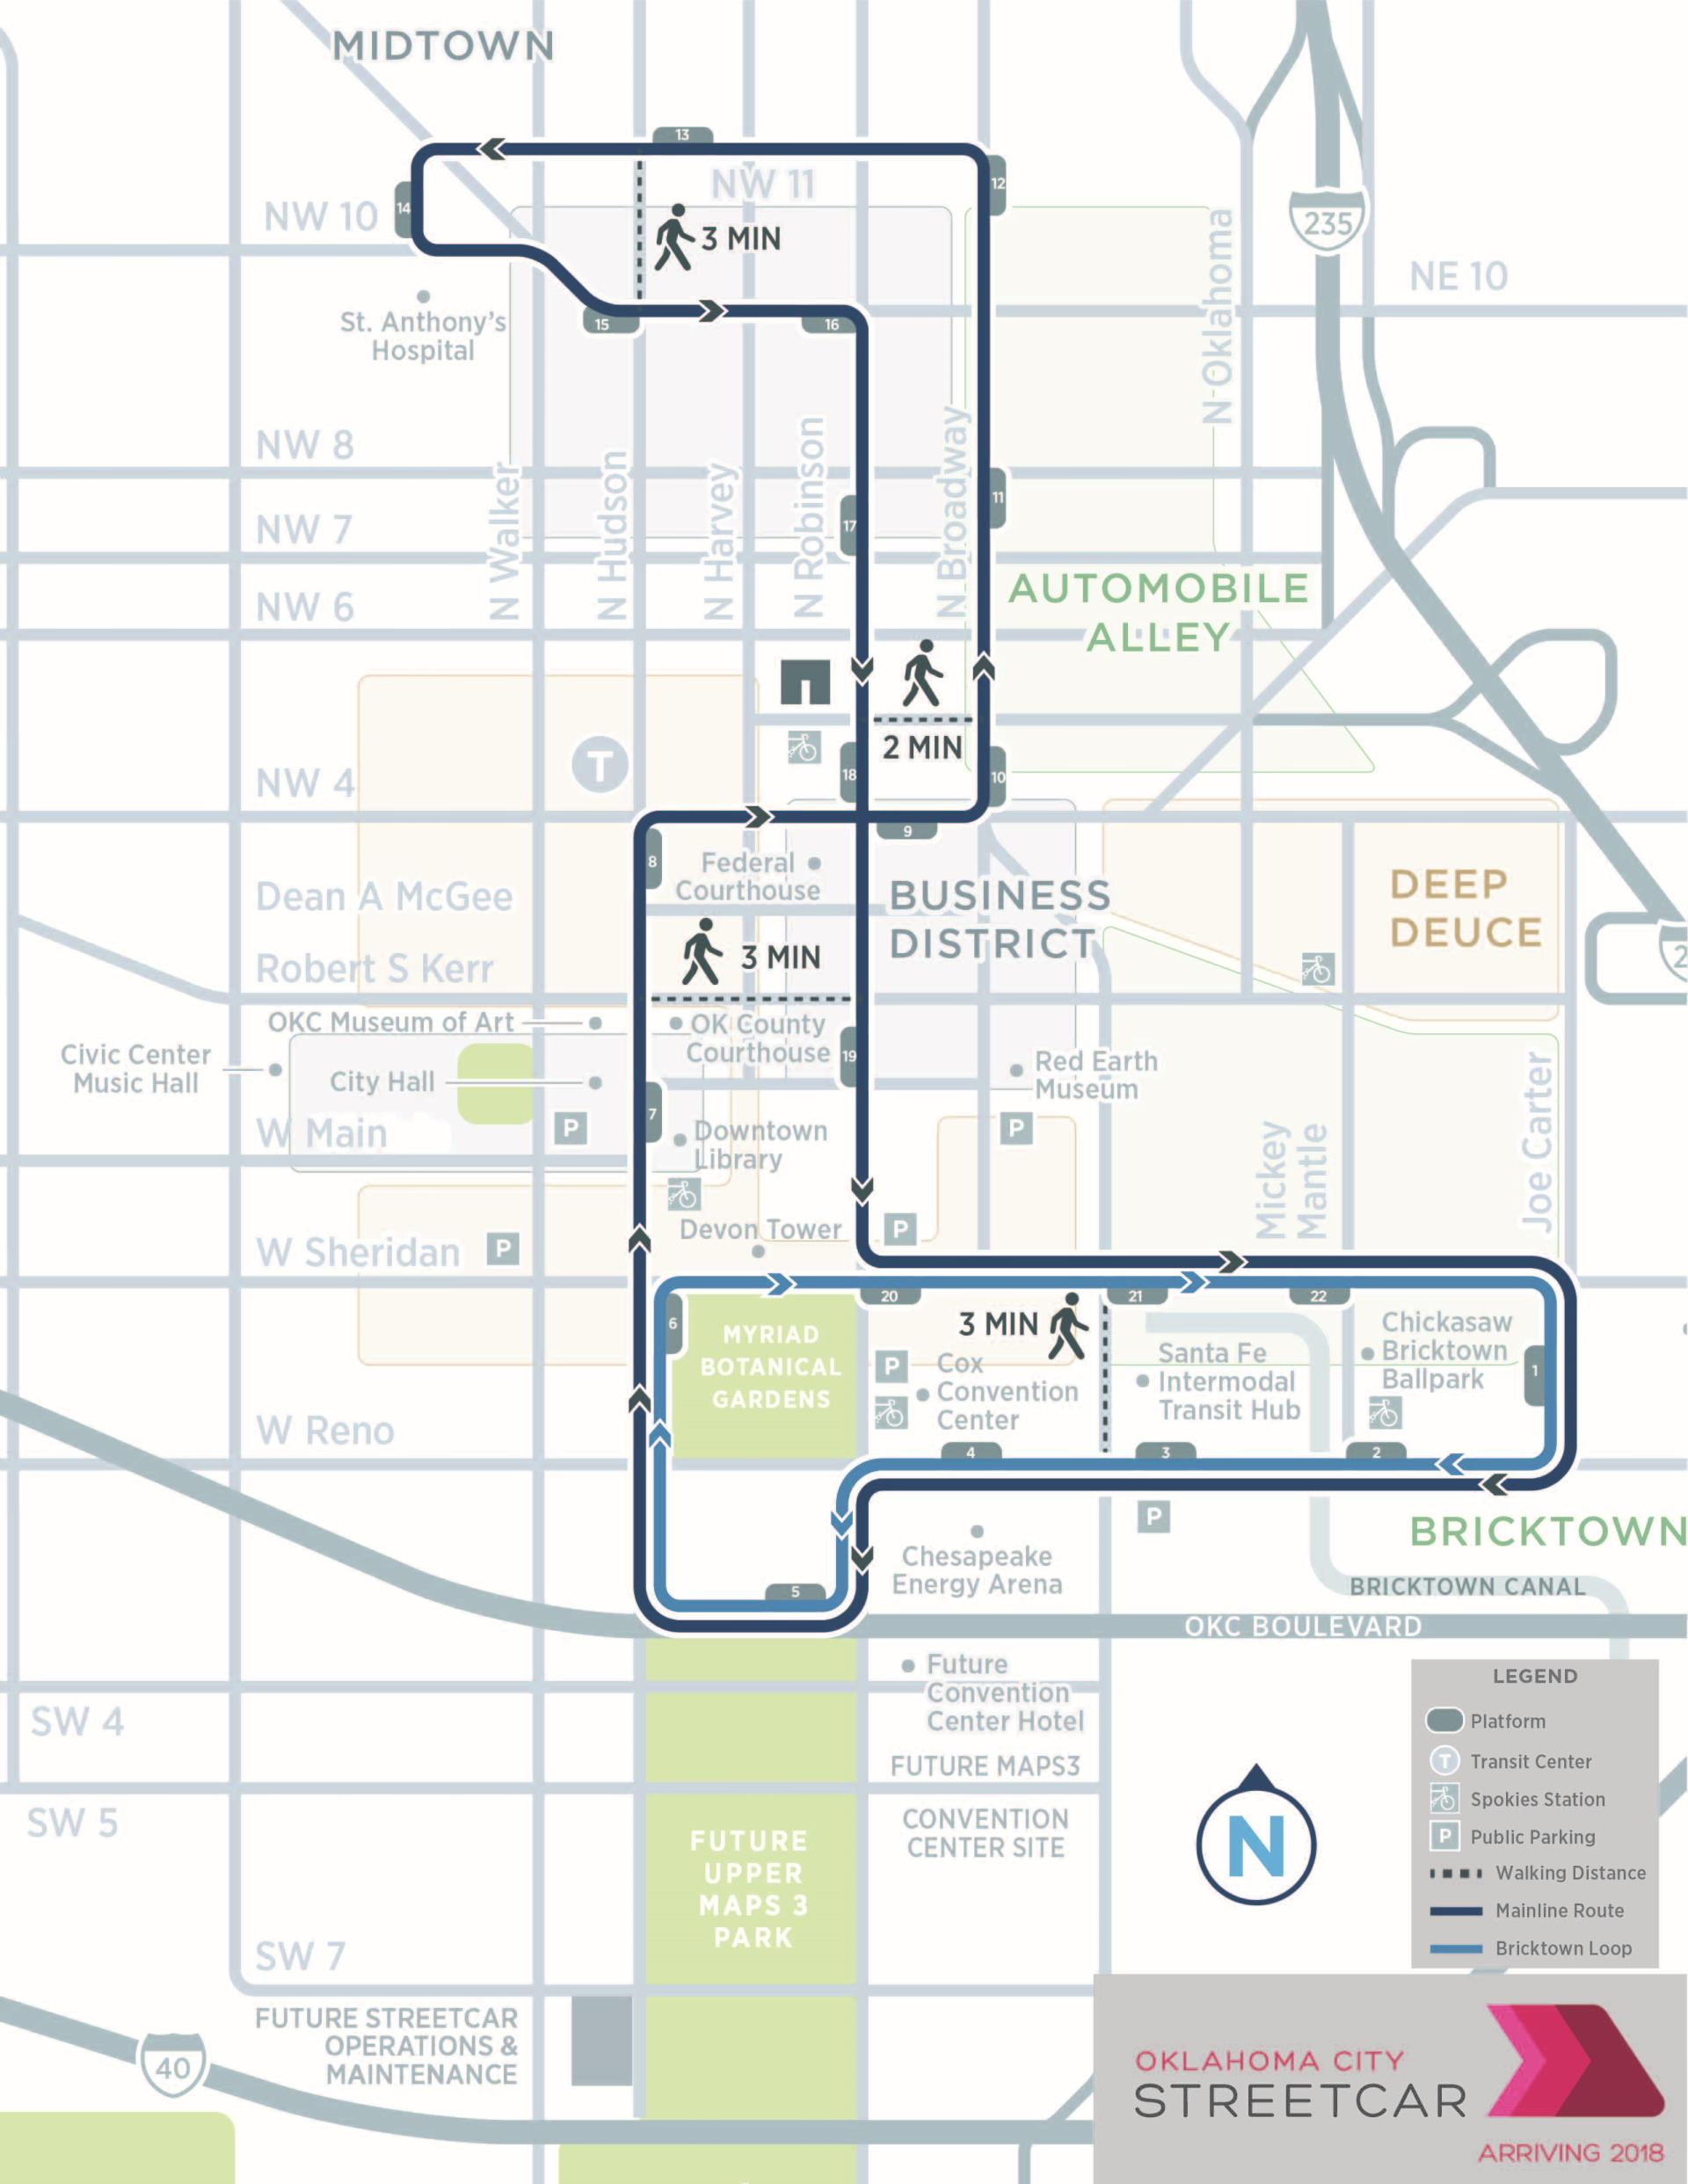 Streetcar Route Map with legend